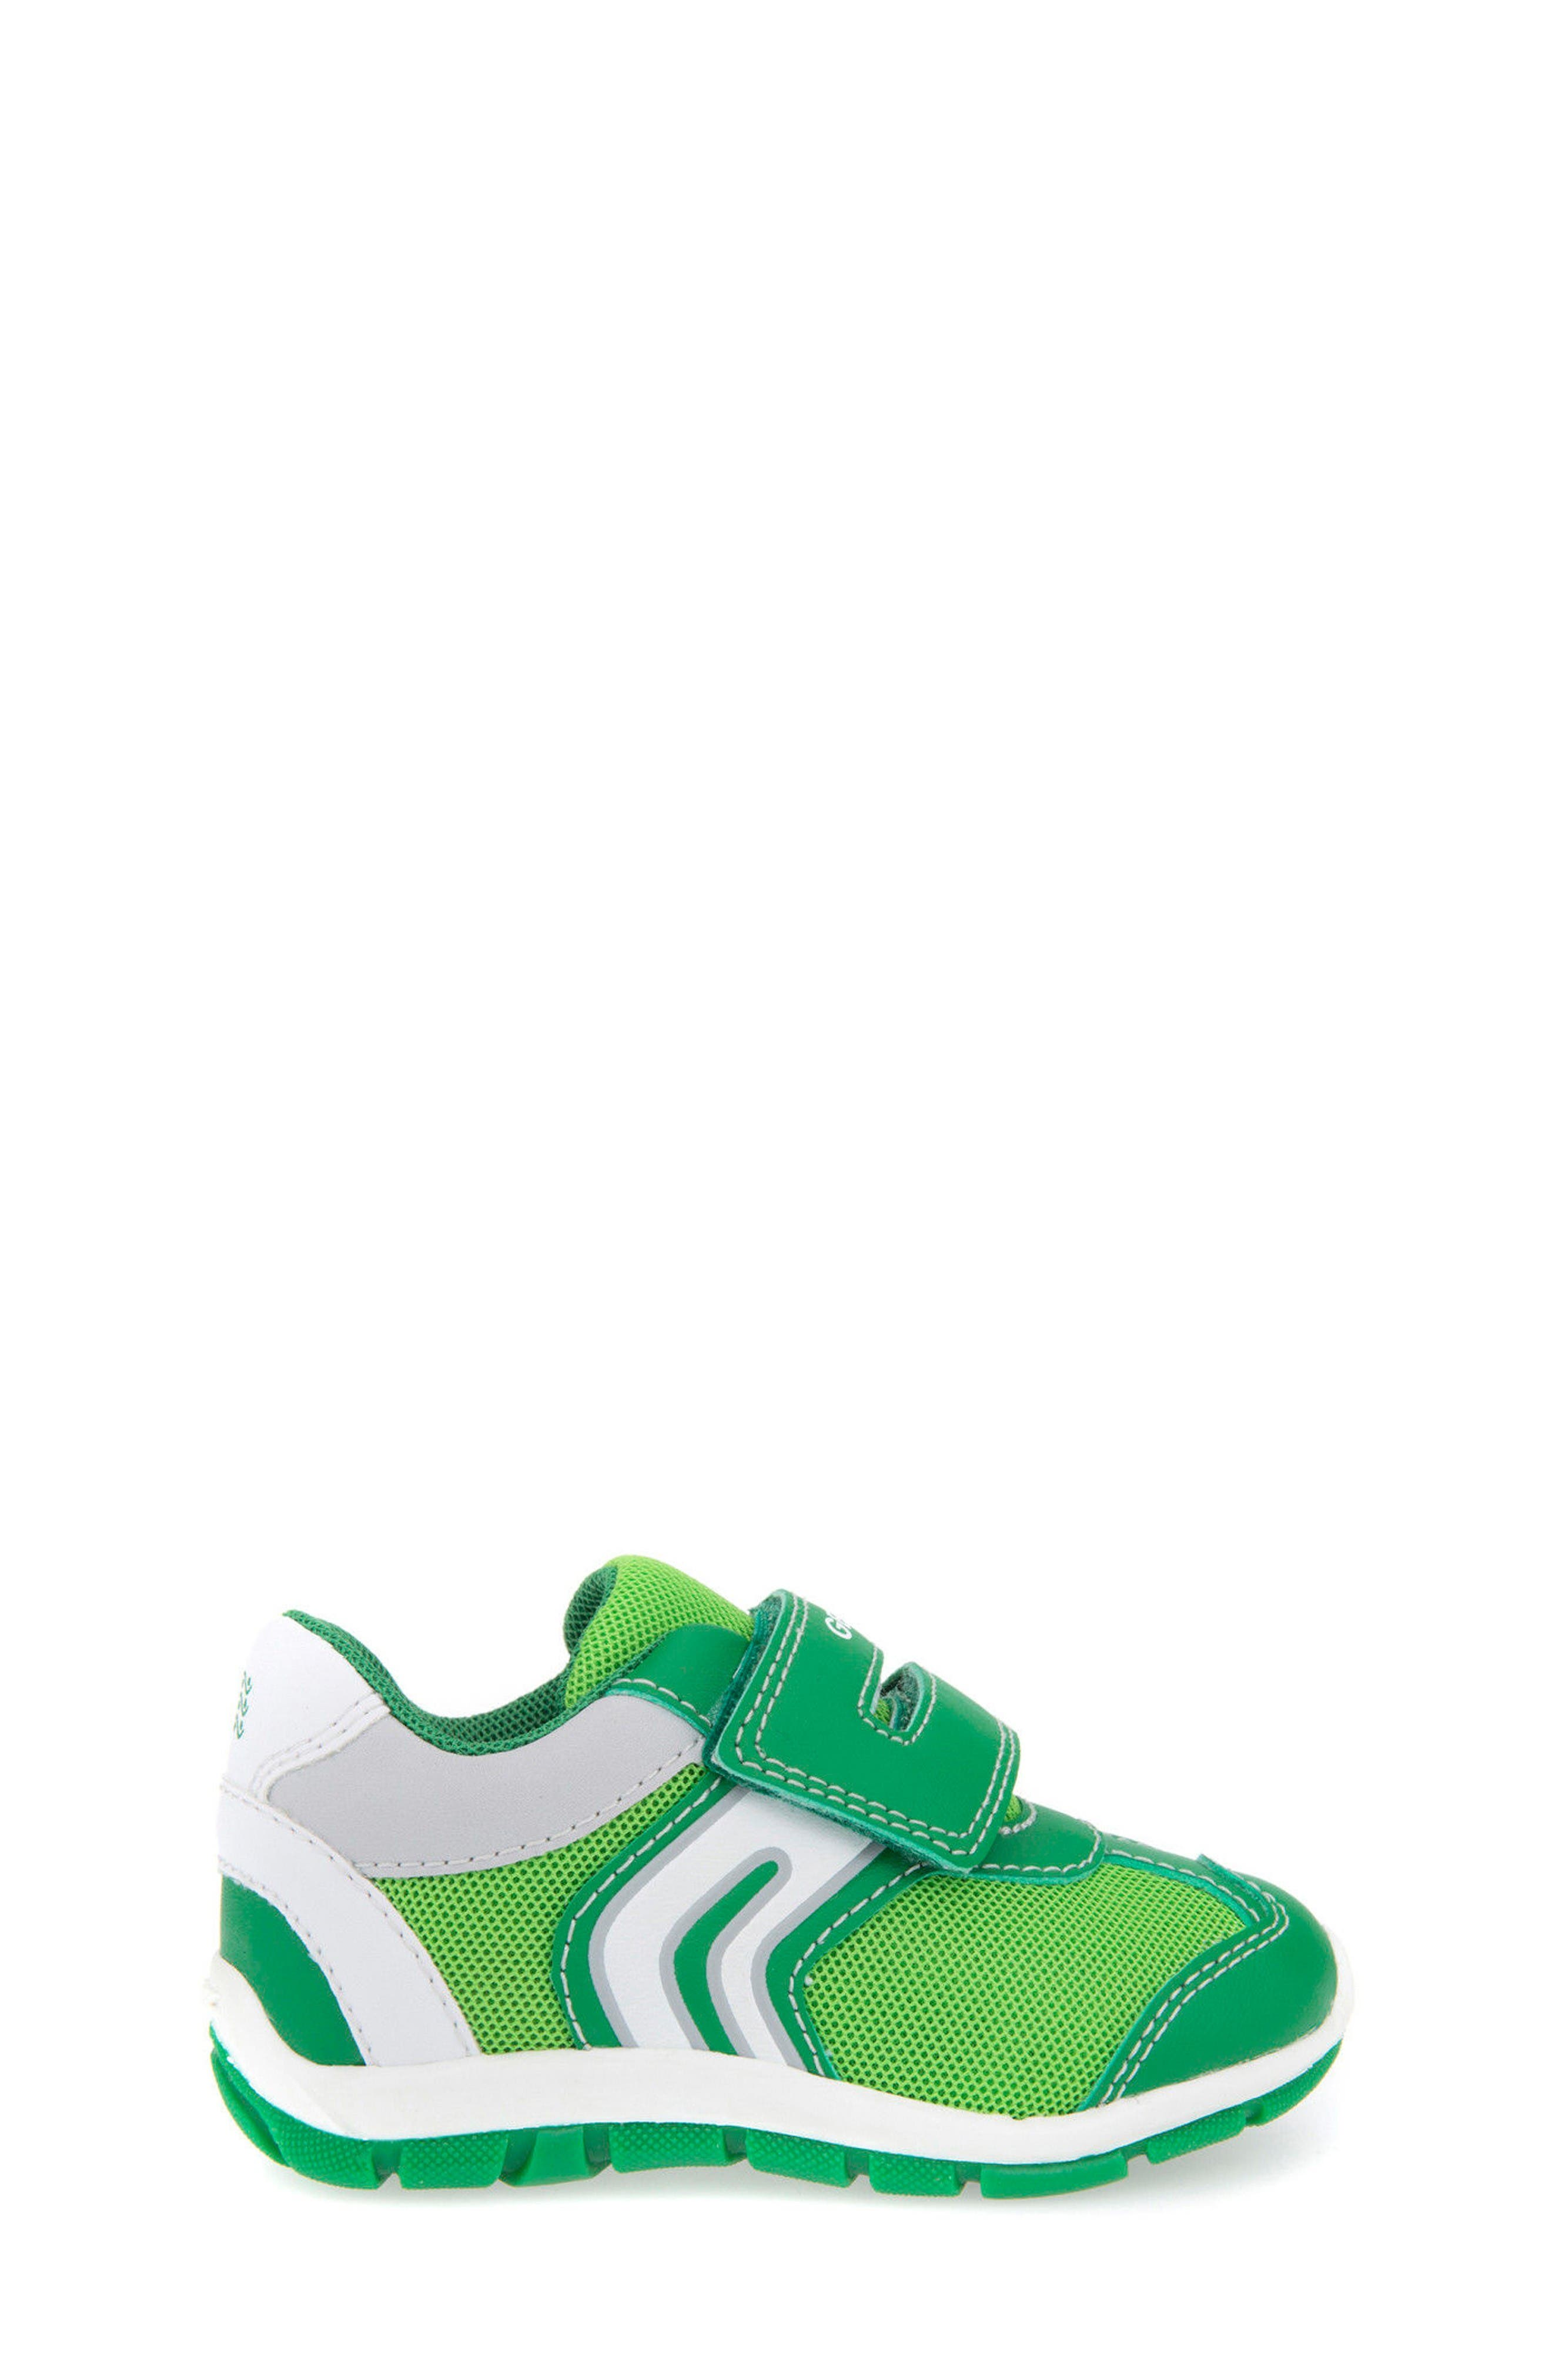 'Shaax 9' Sneaker,                             Alternate thumbnail 3, color,                             Green